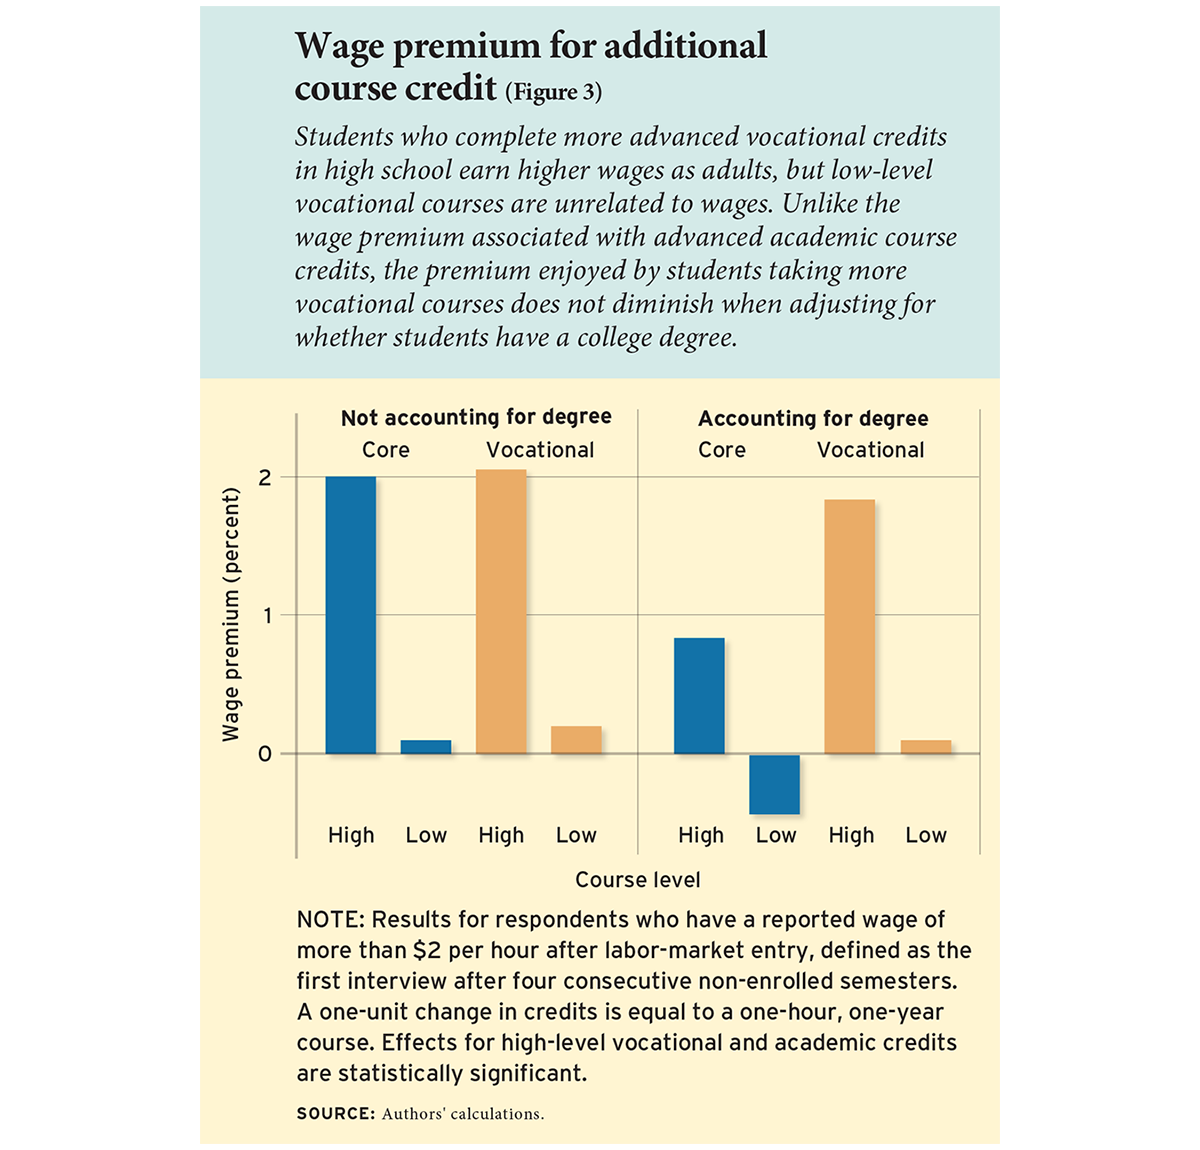 Wage premium for additional course credit (Figure 3)